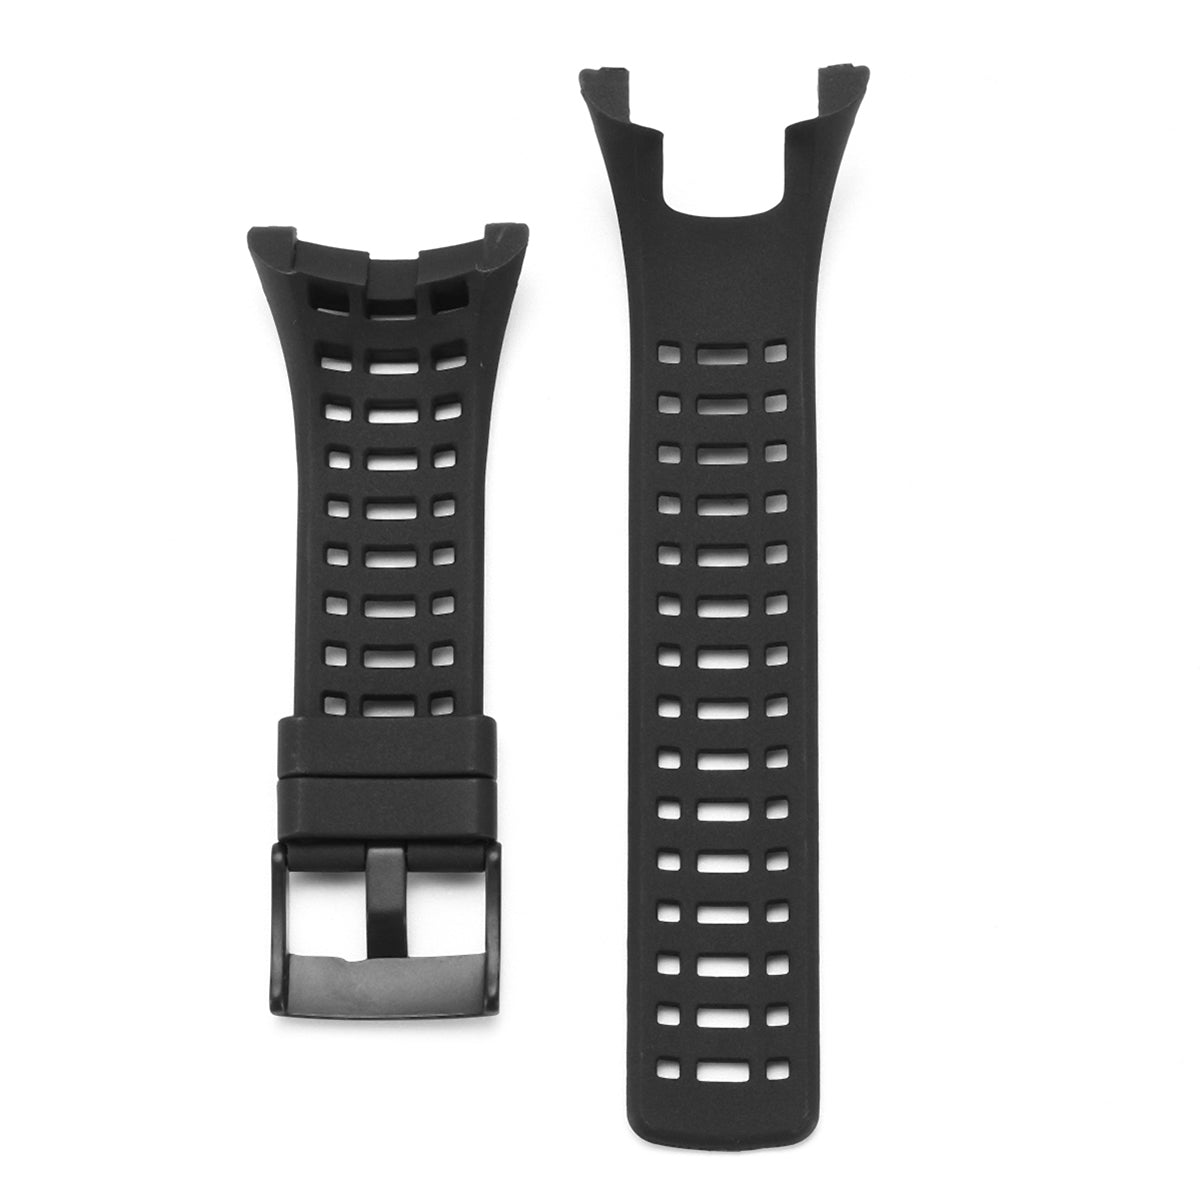 Replacement Black Rubber Watch Band Strap Armband for Suunto Ambit 3 Peak Ambit 2